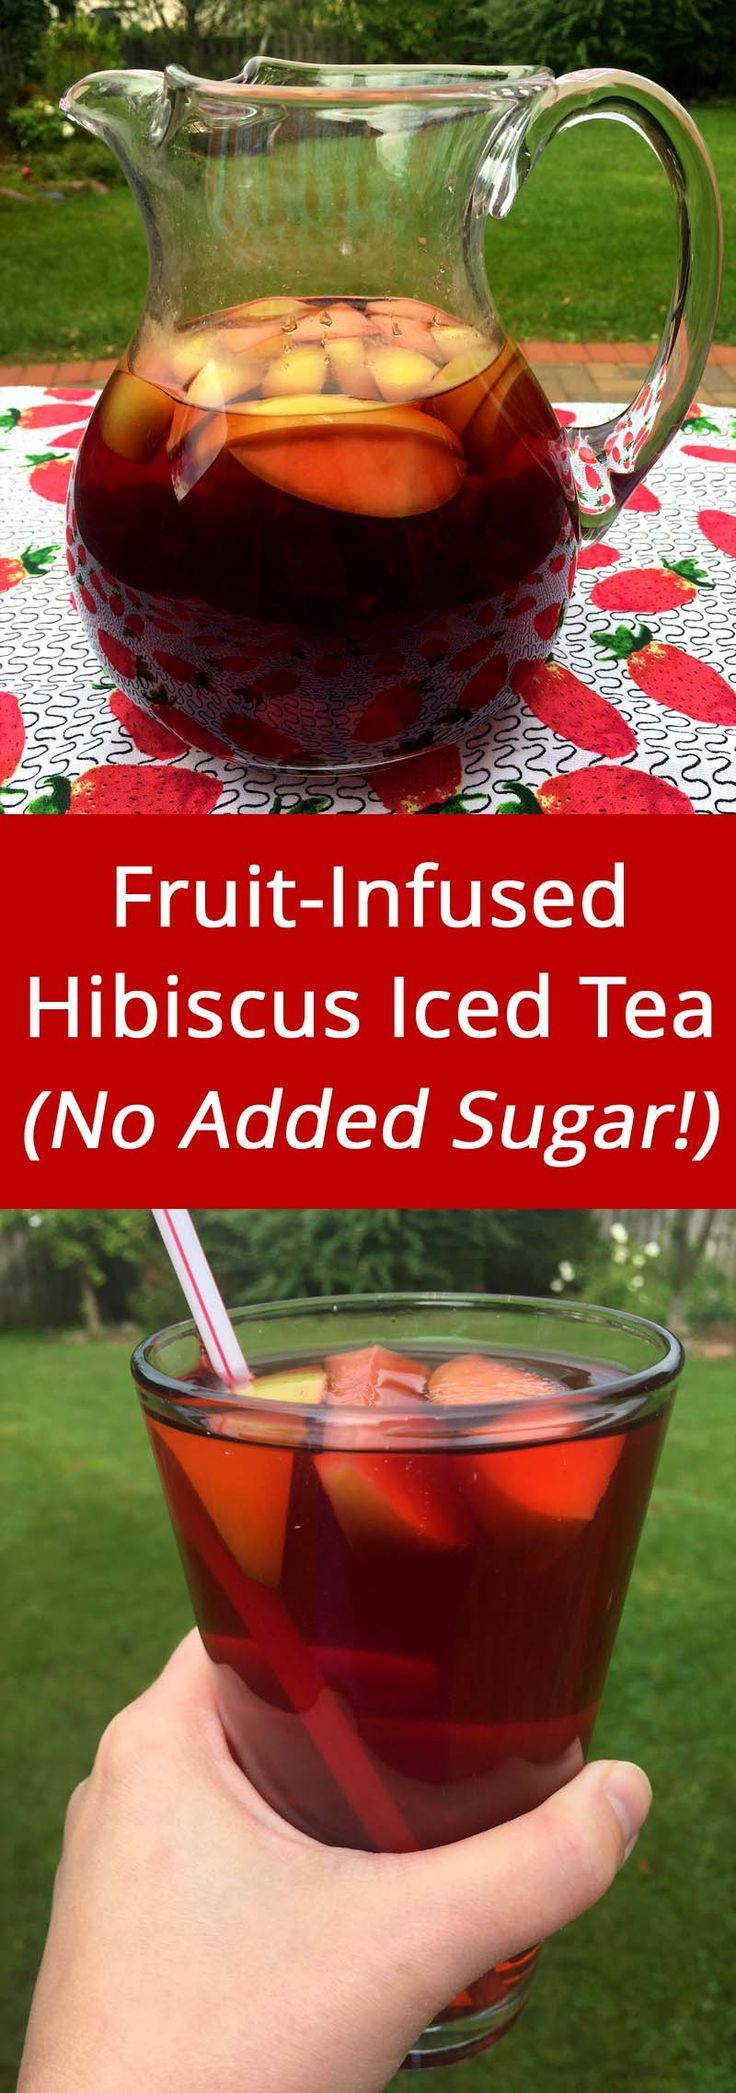 Fruit-Infused Hibiscus Iced Tea - naturally sweet, no added sugar, zero calorie drink! | http://MelanieCooks.com